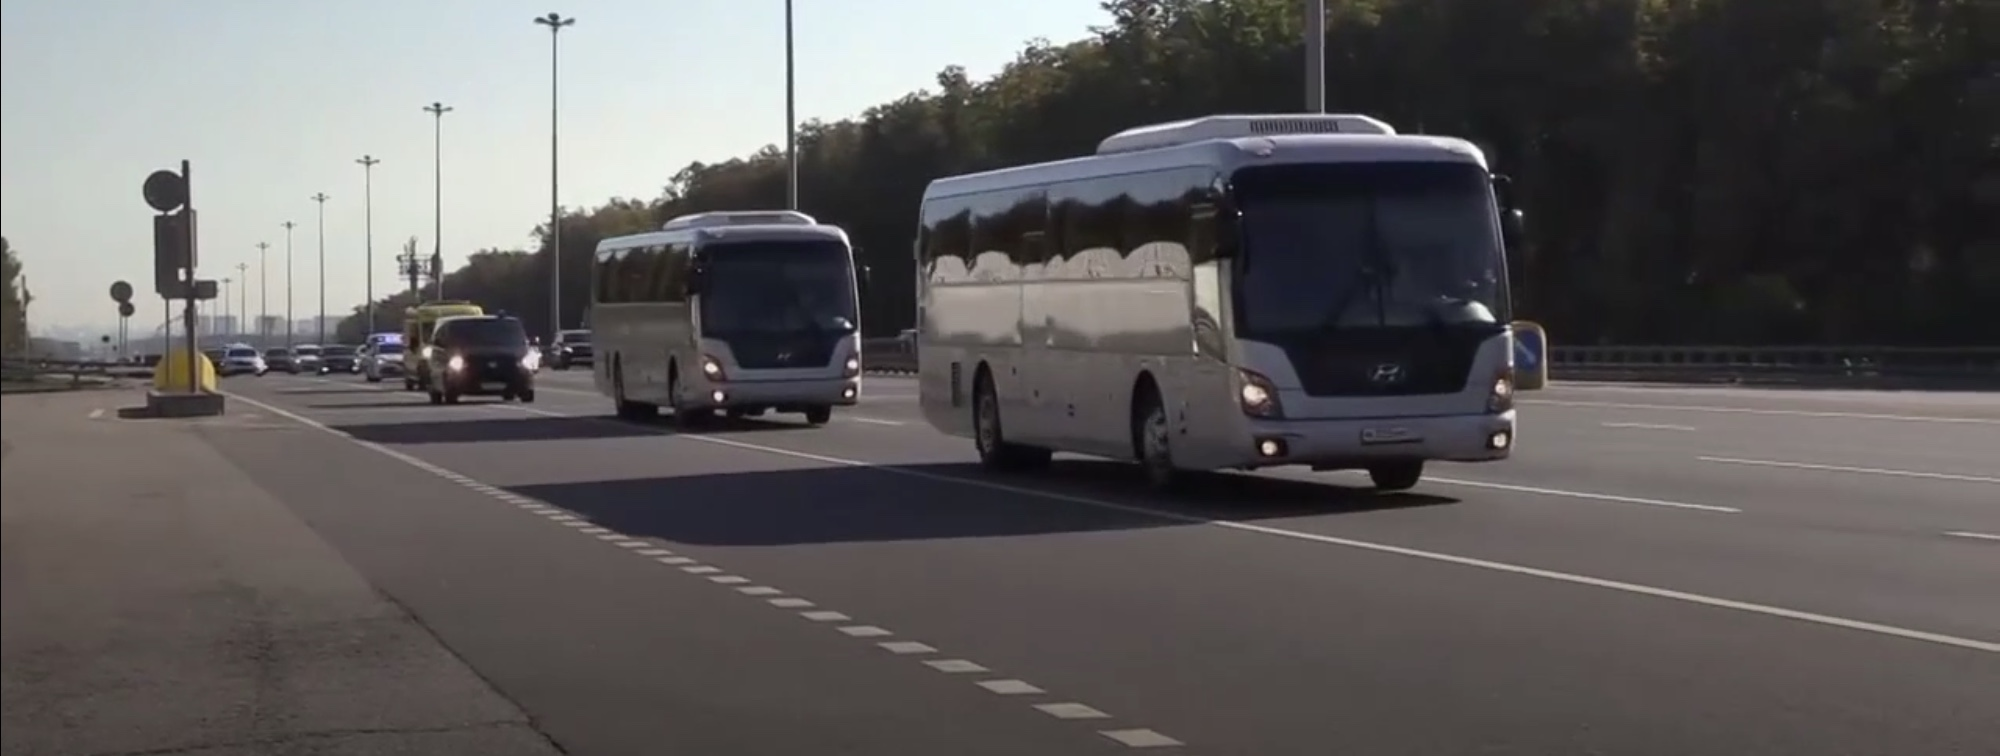 Buses believed to be carrying the 24 Ukrainian sailors captured by Russia departed Moscow's Lefortovo prison on Saturday morning.